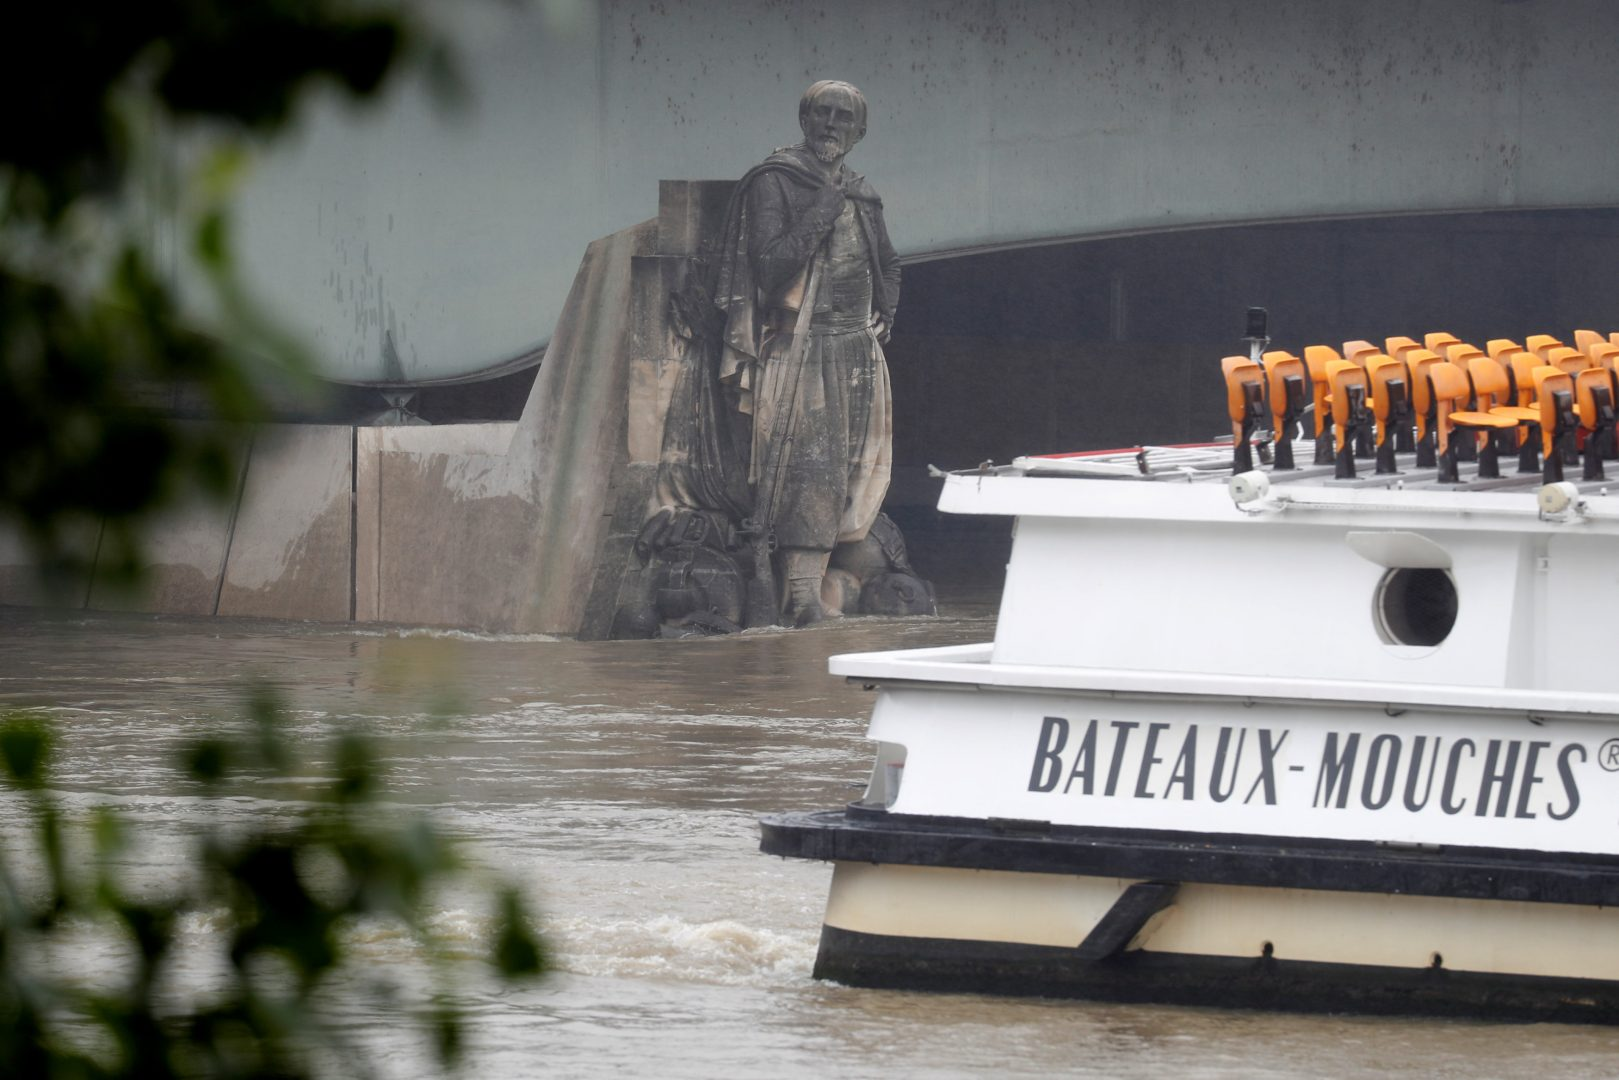 "A ""Bateaux Mouches"" tourist boat approaches the Zouave statue on the Pont de l'Alma as high waters causes minor flooding along the Seine River in Paris, France, May 31, 2016 as the Zouave statue is considered an indicator of the level of the Seine, when his feet are under water, emergency flood precautions are taken. REUTERS/Charles Platiau"